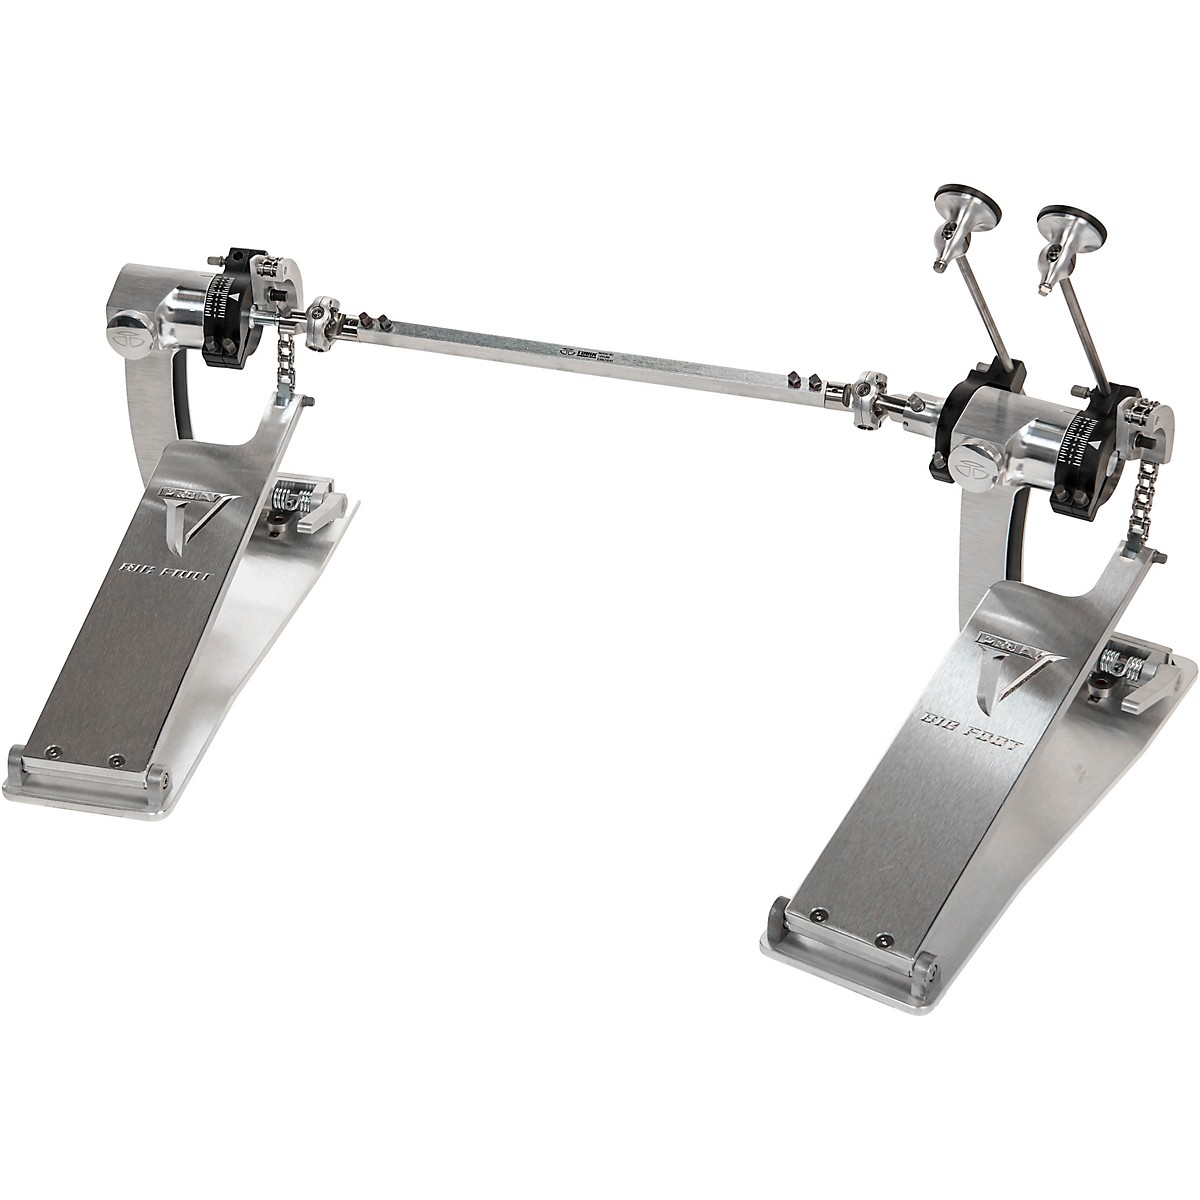 Trick Pro1-V BigFoot Chain Drive Double Bass Drum Pedal